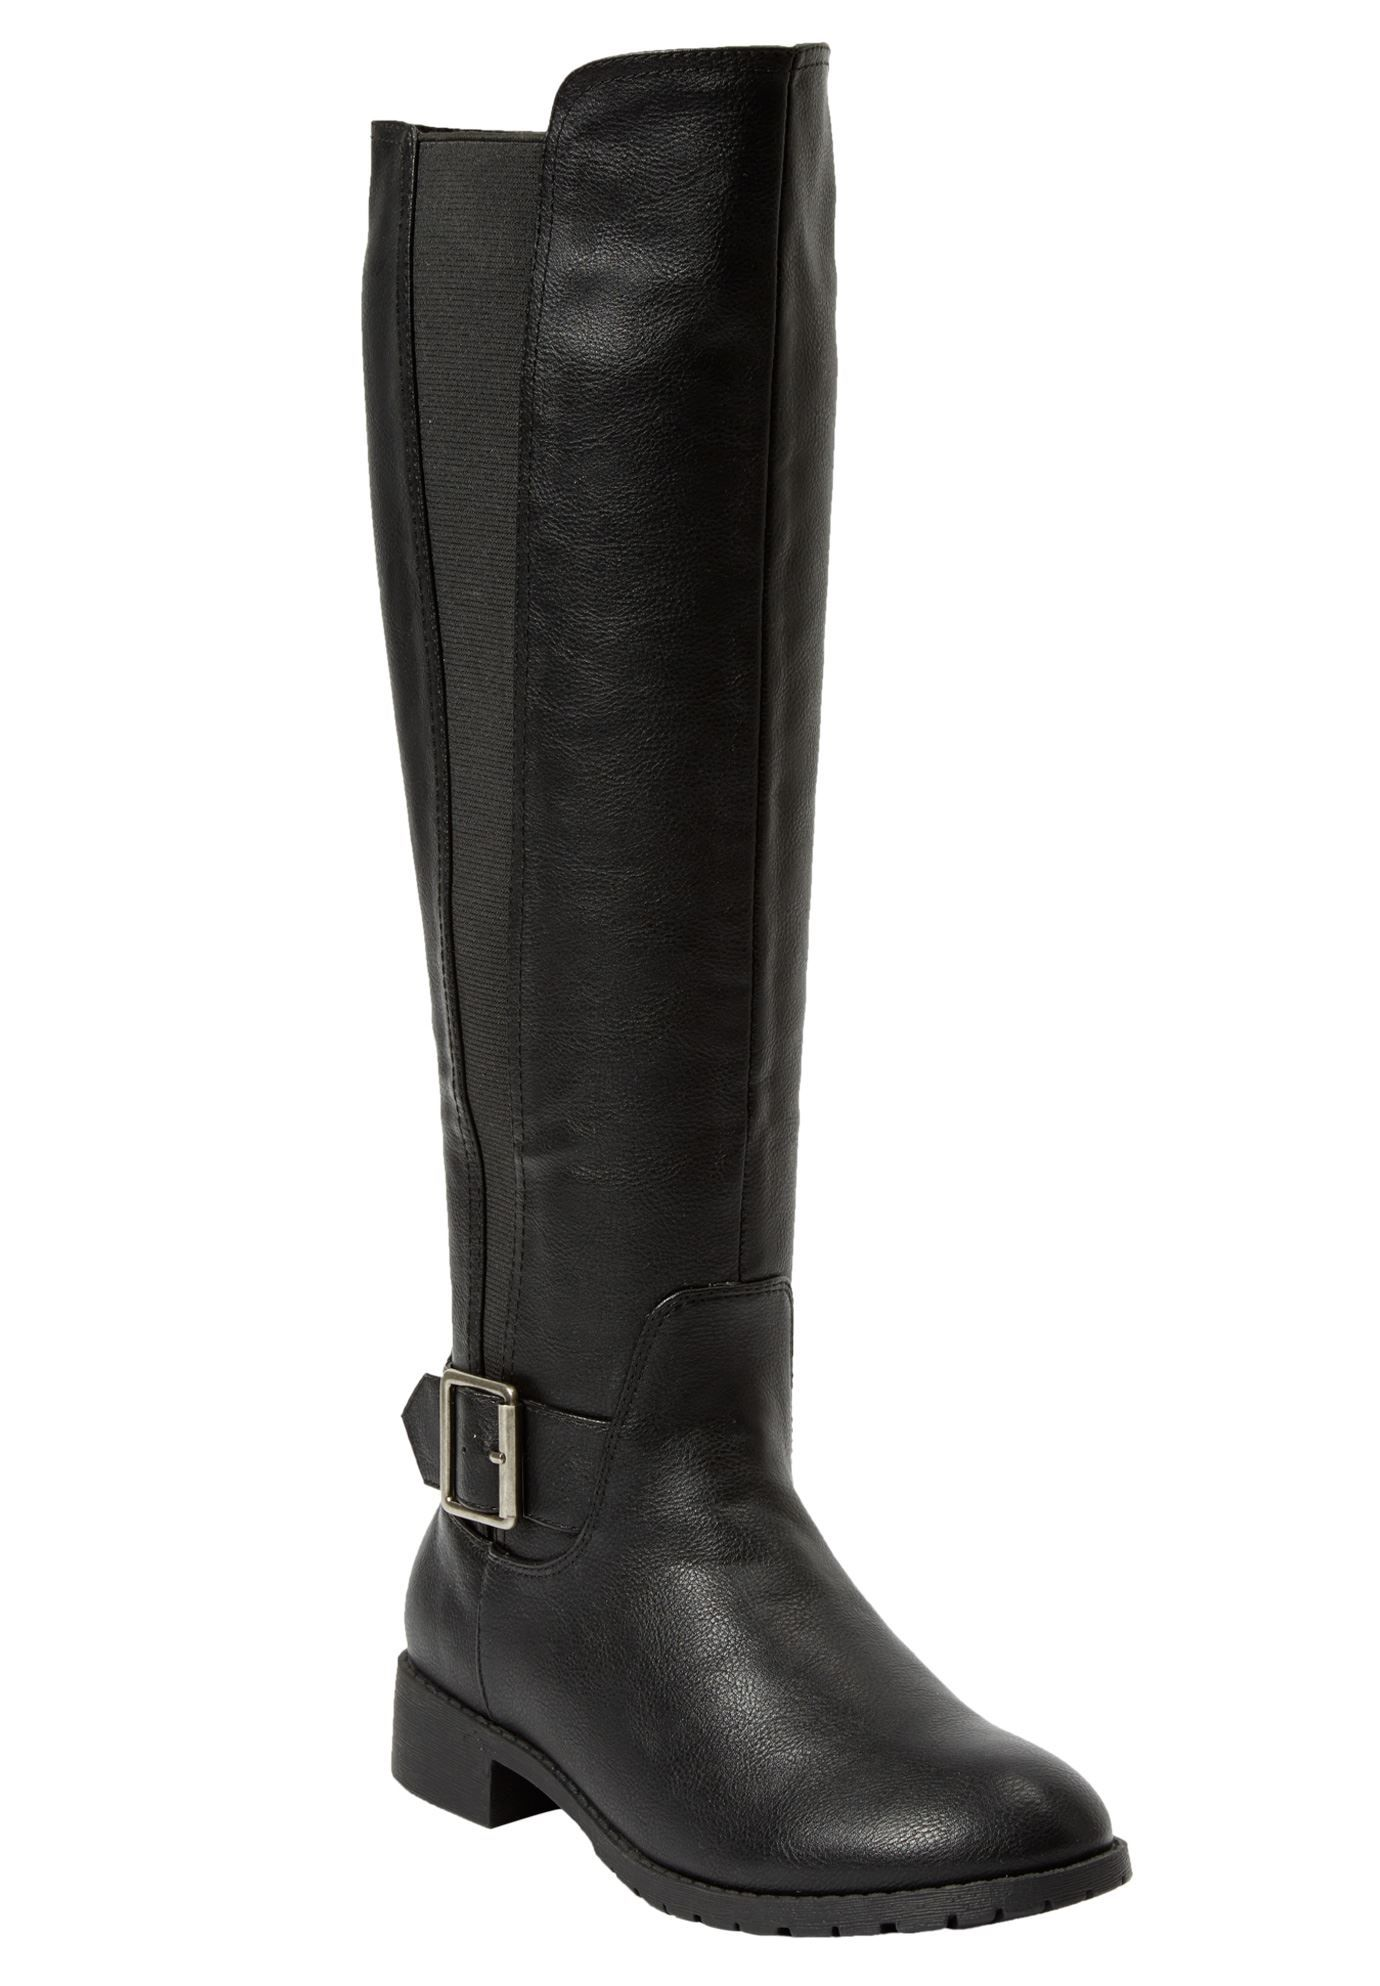 6ceacbea120 Milan Wide Calf Boot by Comfortview® - Wide Width Women's | Products